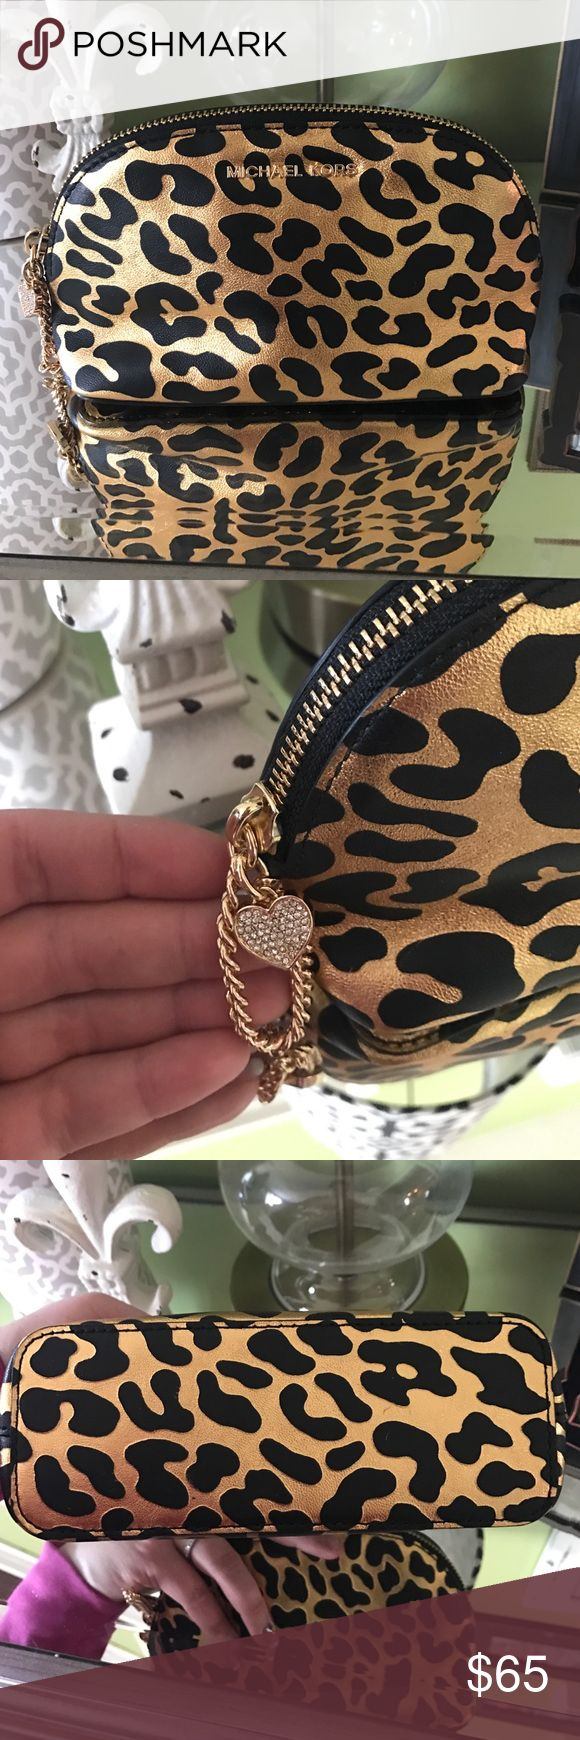 MICHAEL Michael Kors Alex Medium Travel Pouch Top zipper closure. Chain strap zipper pull with jeweled heart. Exterior boasts brand name hardware. Flat bottom. Lined interior features slip pocket. Leopard pattern. Used a couple of times. 🚫NO trades....Looking to sell. MICHAEL Michael Kors Bags Cosmetic Bags & Cases